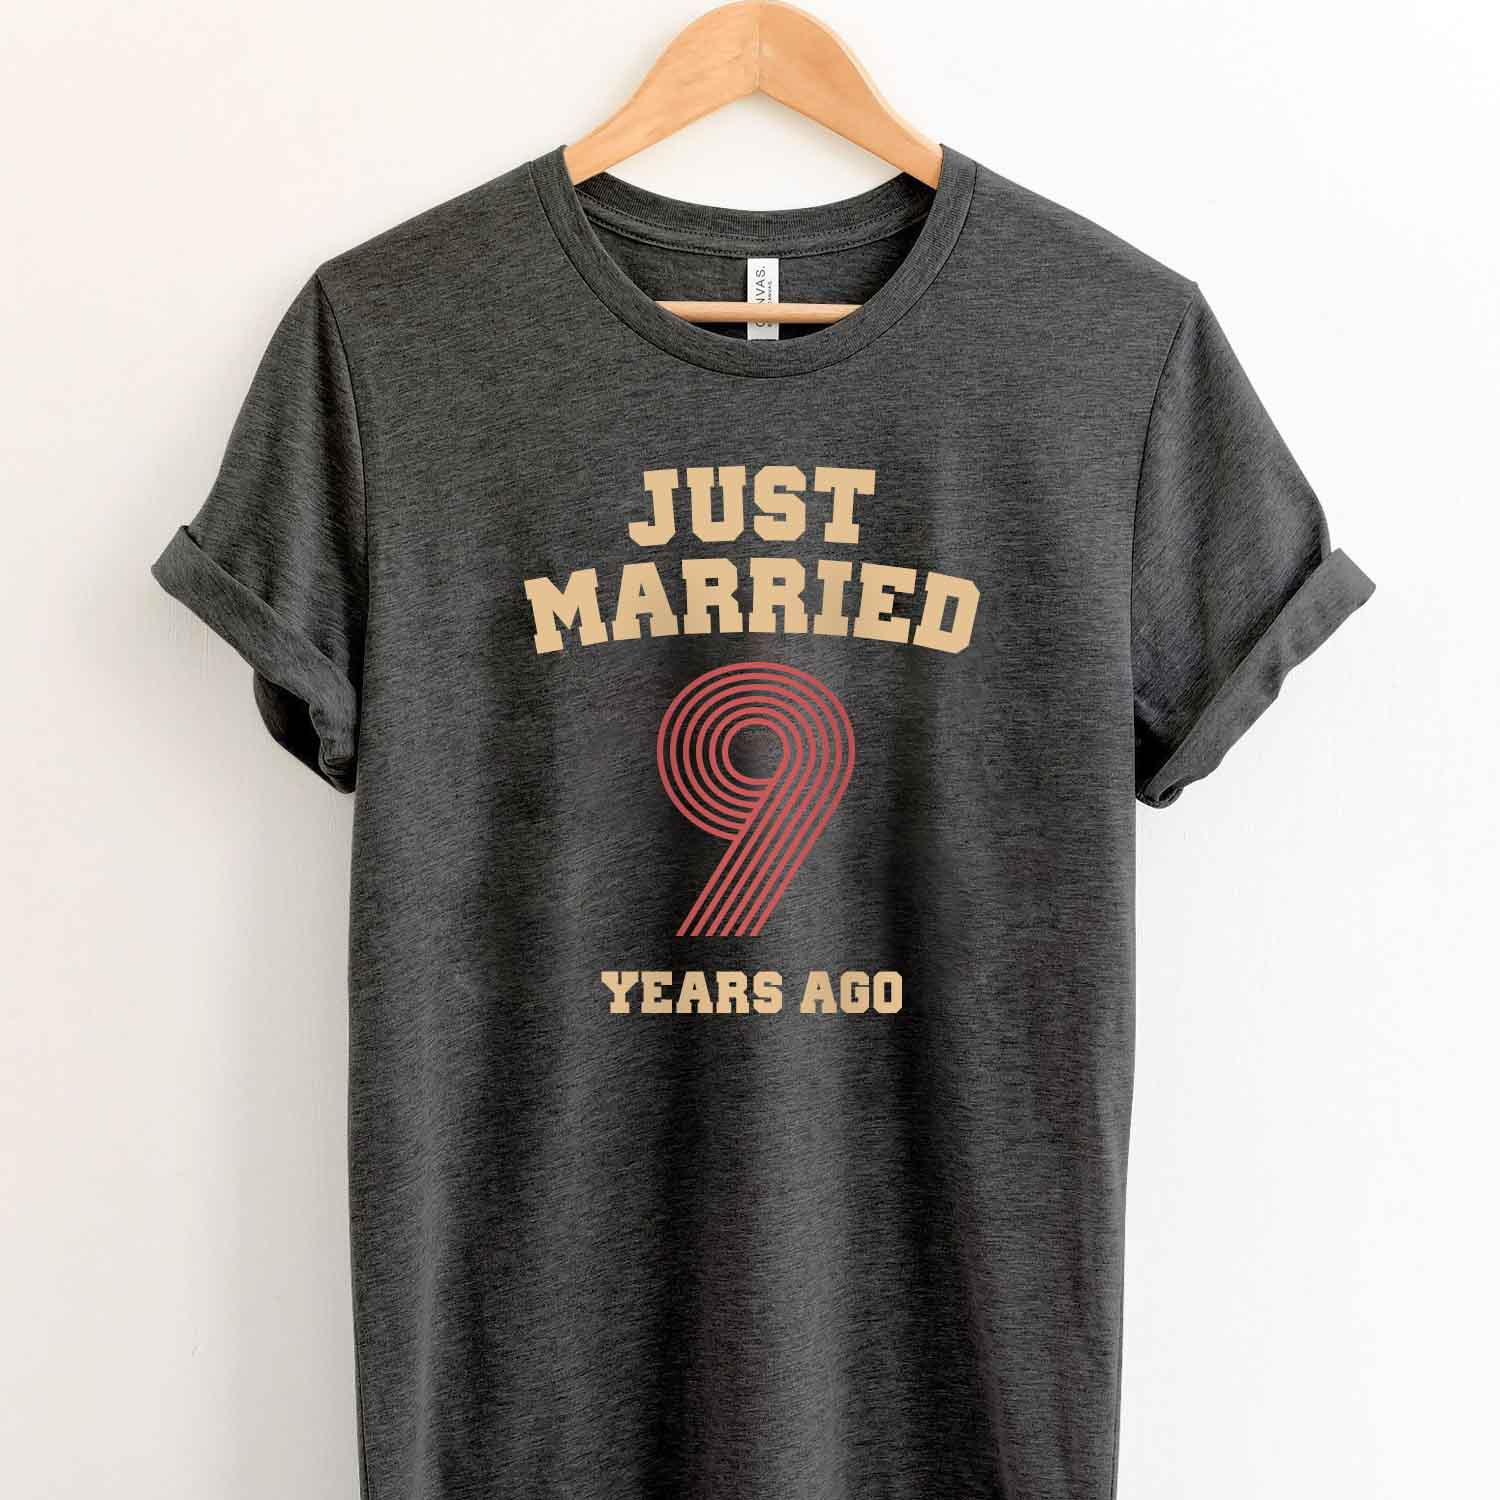 Just Married 9 Years Ago 2010 T Shirt Perfect Sweet Romantic Gift for Couple Husband Wife